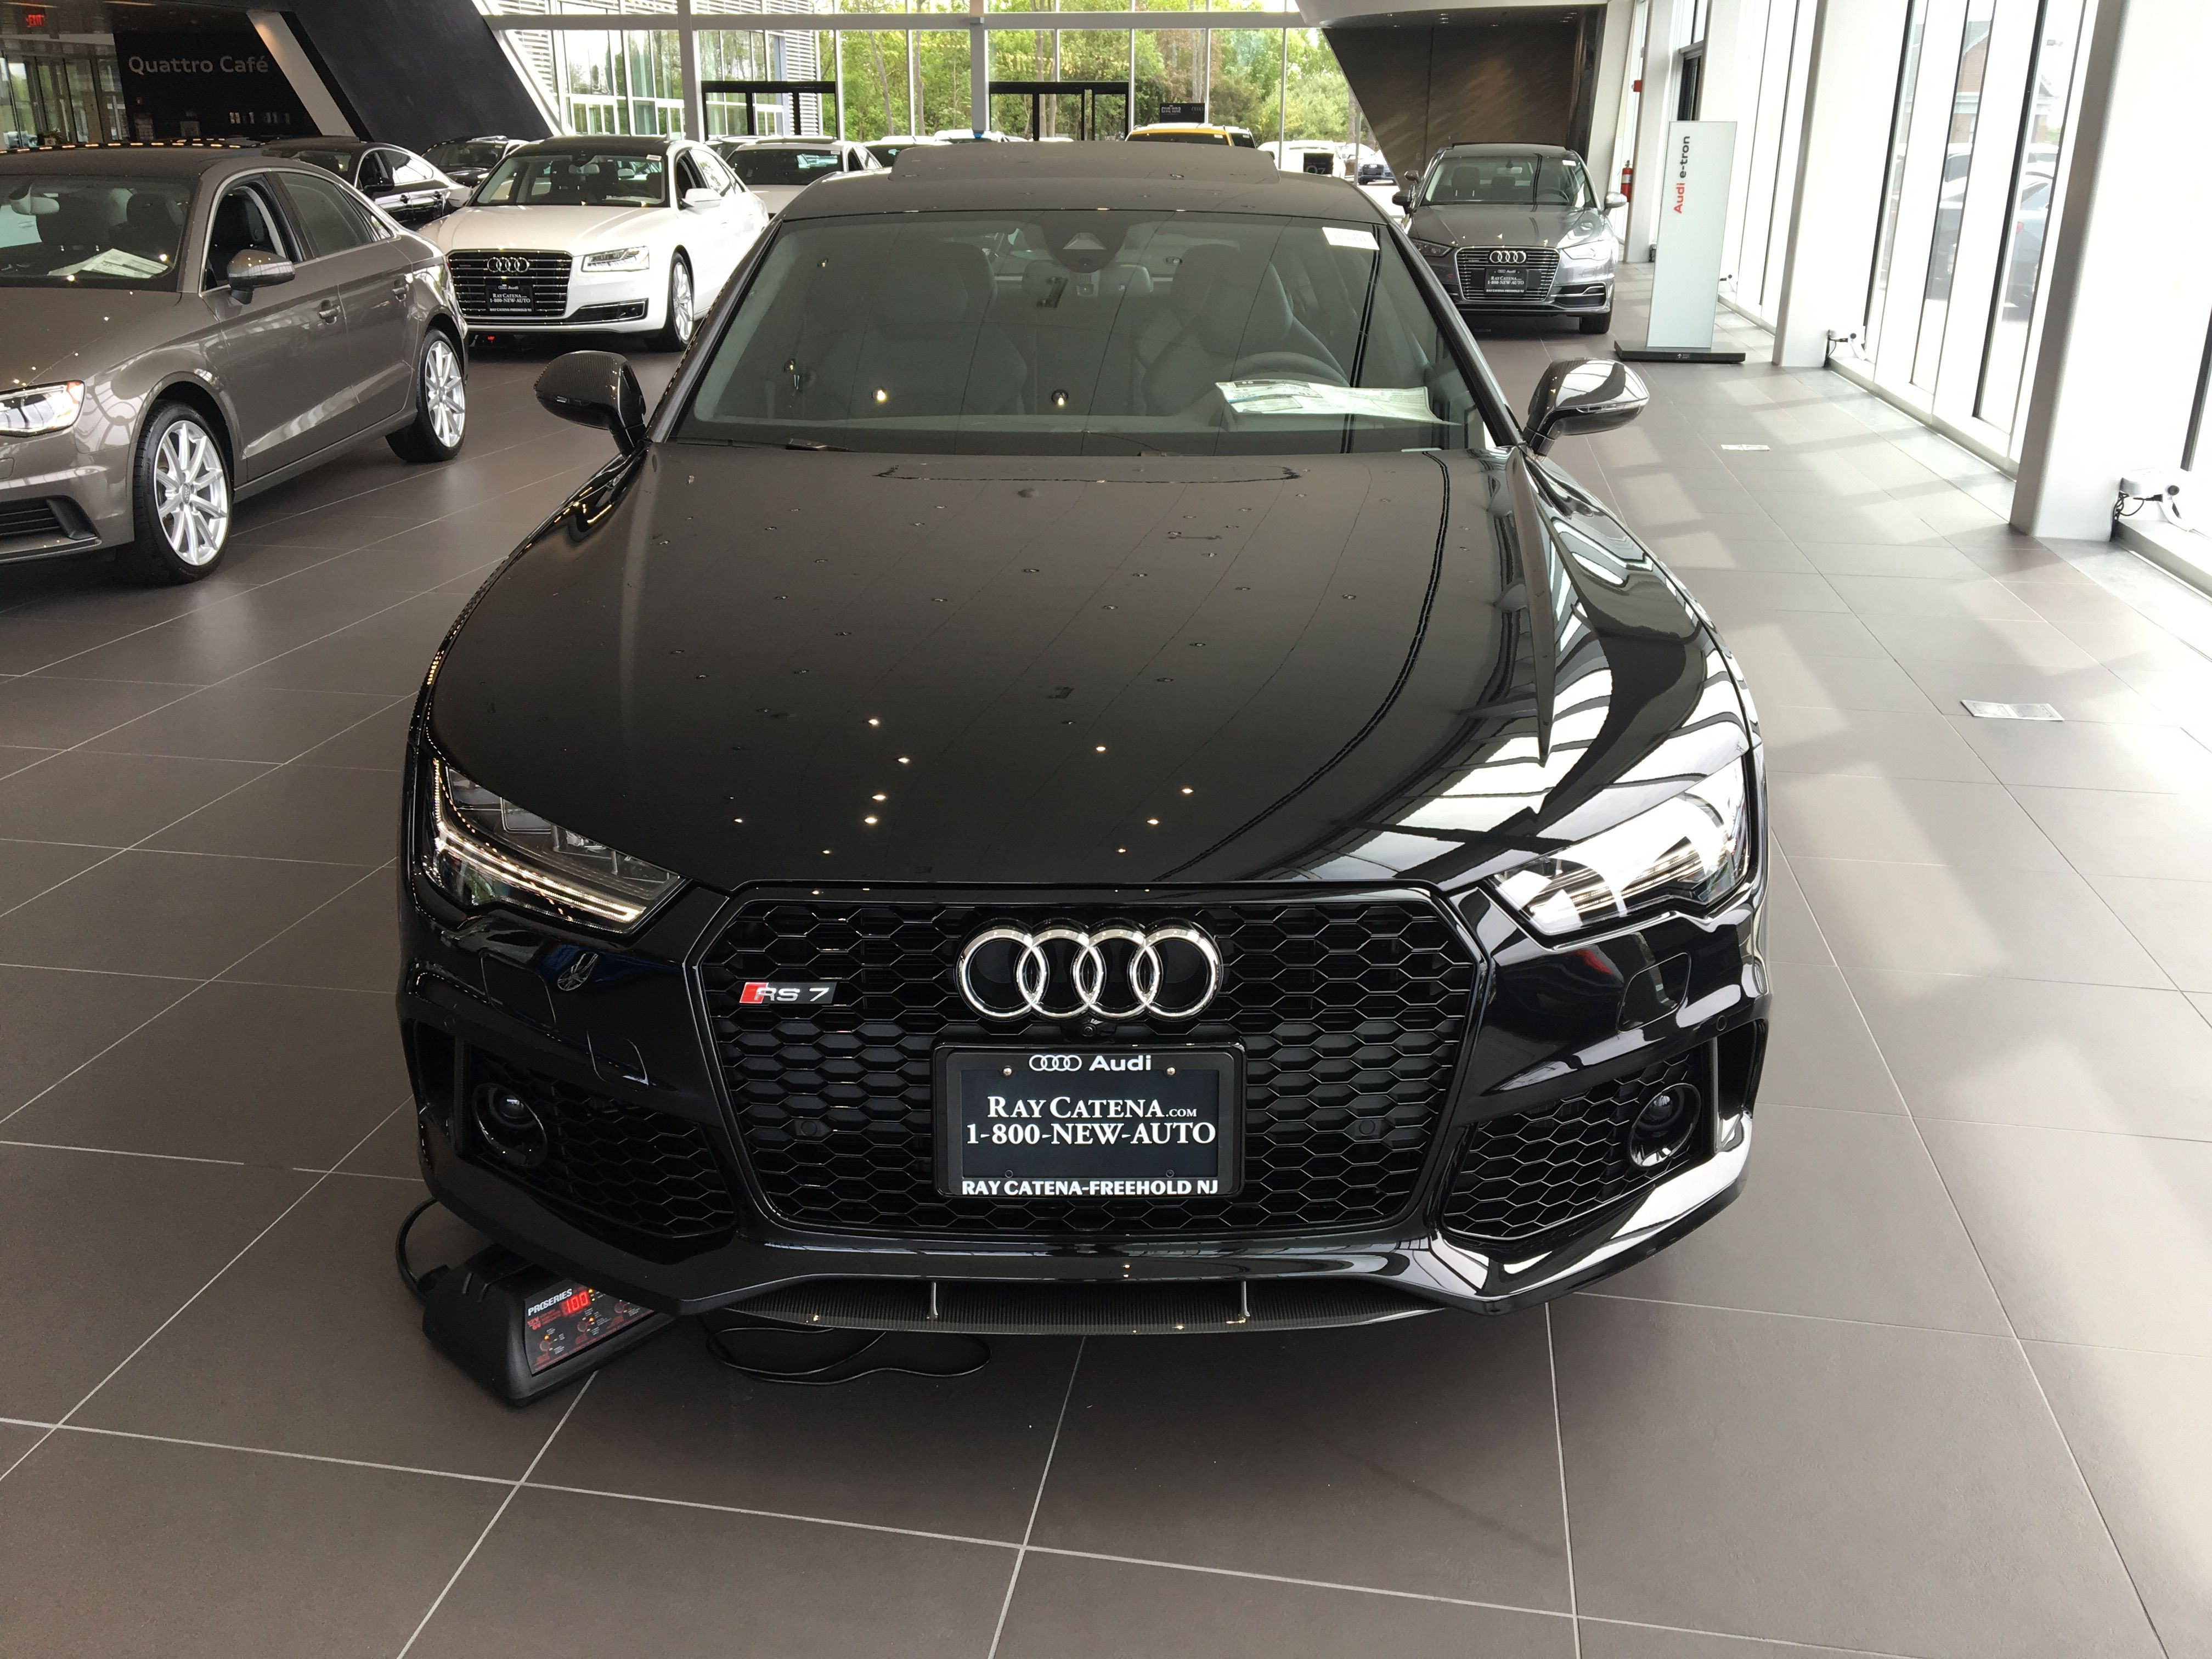 Car And Driver Reviews The Audi Rs7 Performance Cheap Cars For